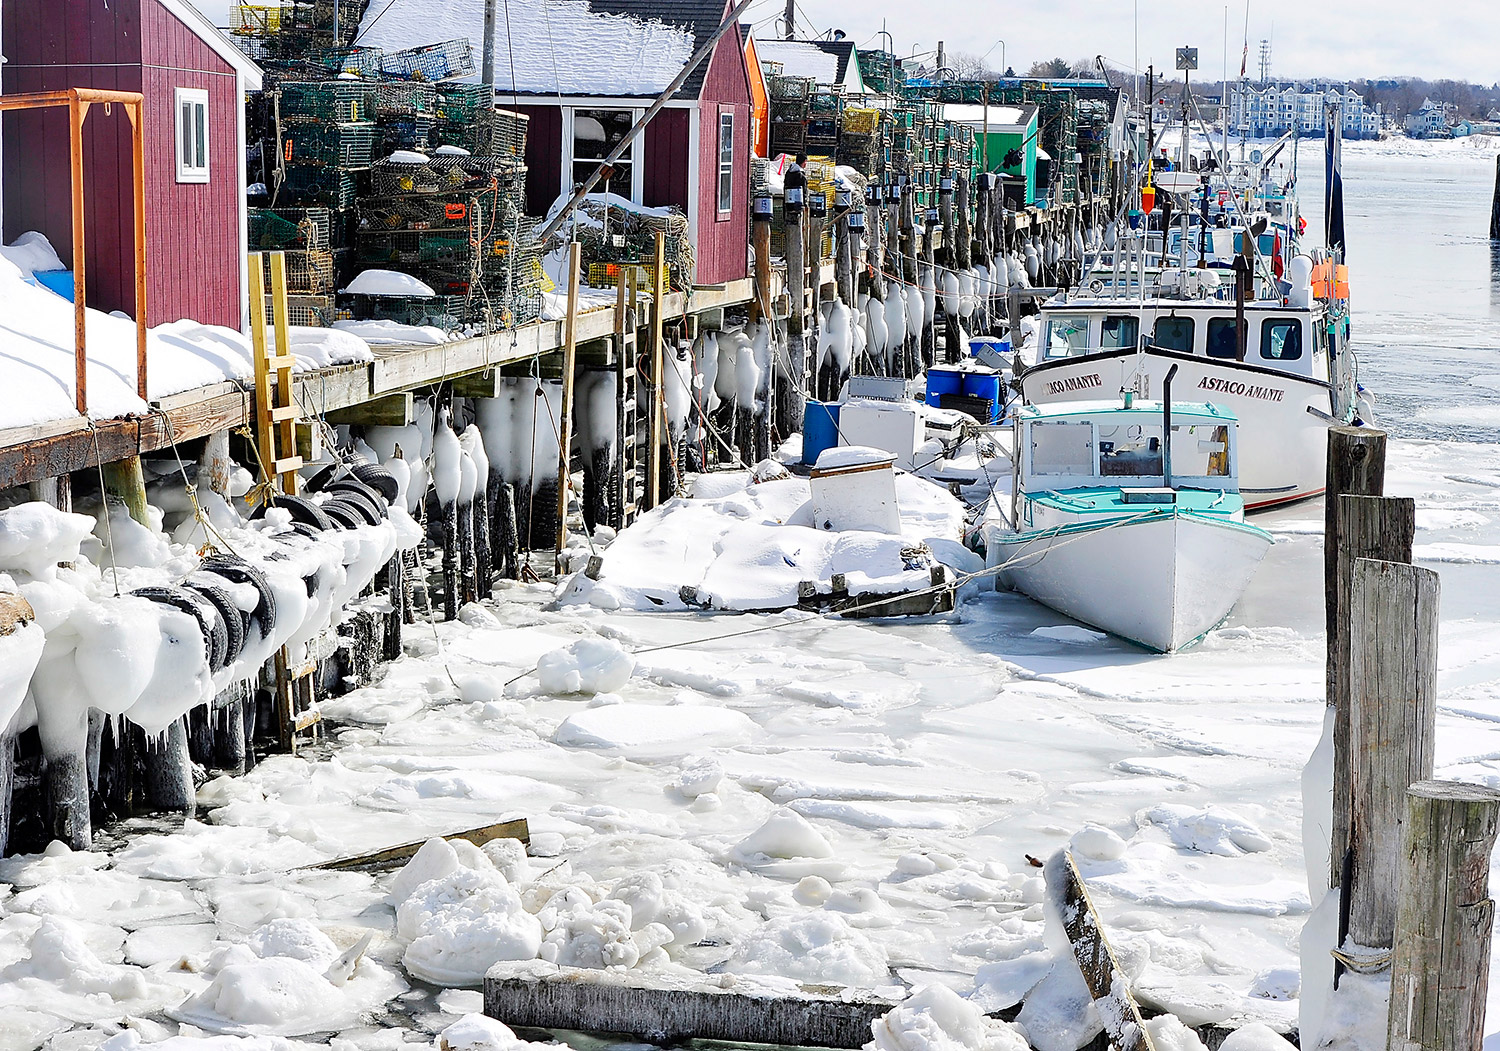 Frozen: Portland's icy harbor, then and now - Portland ...